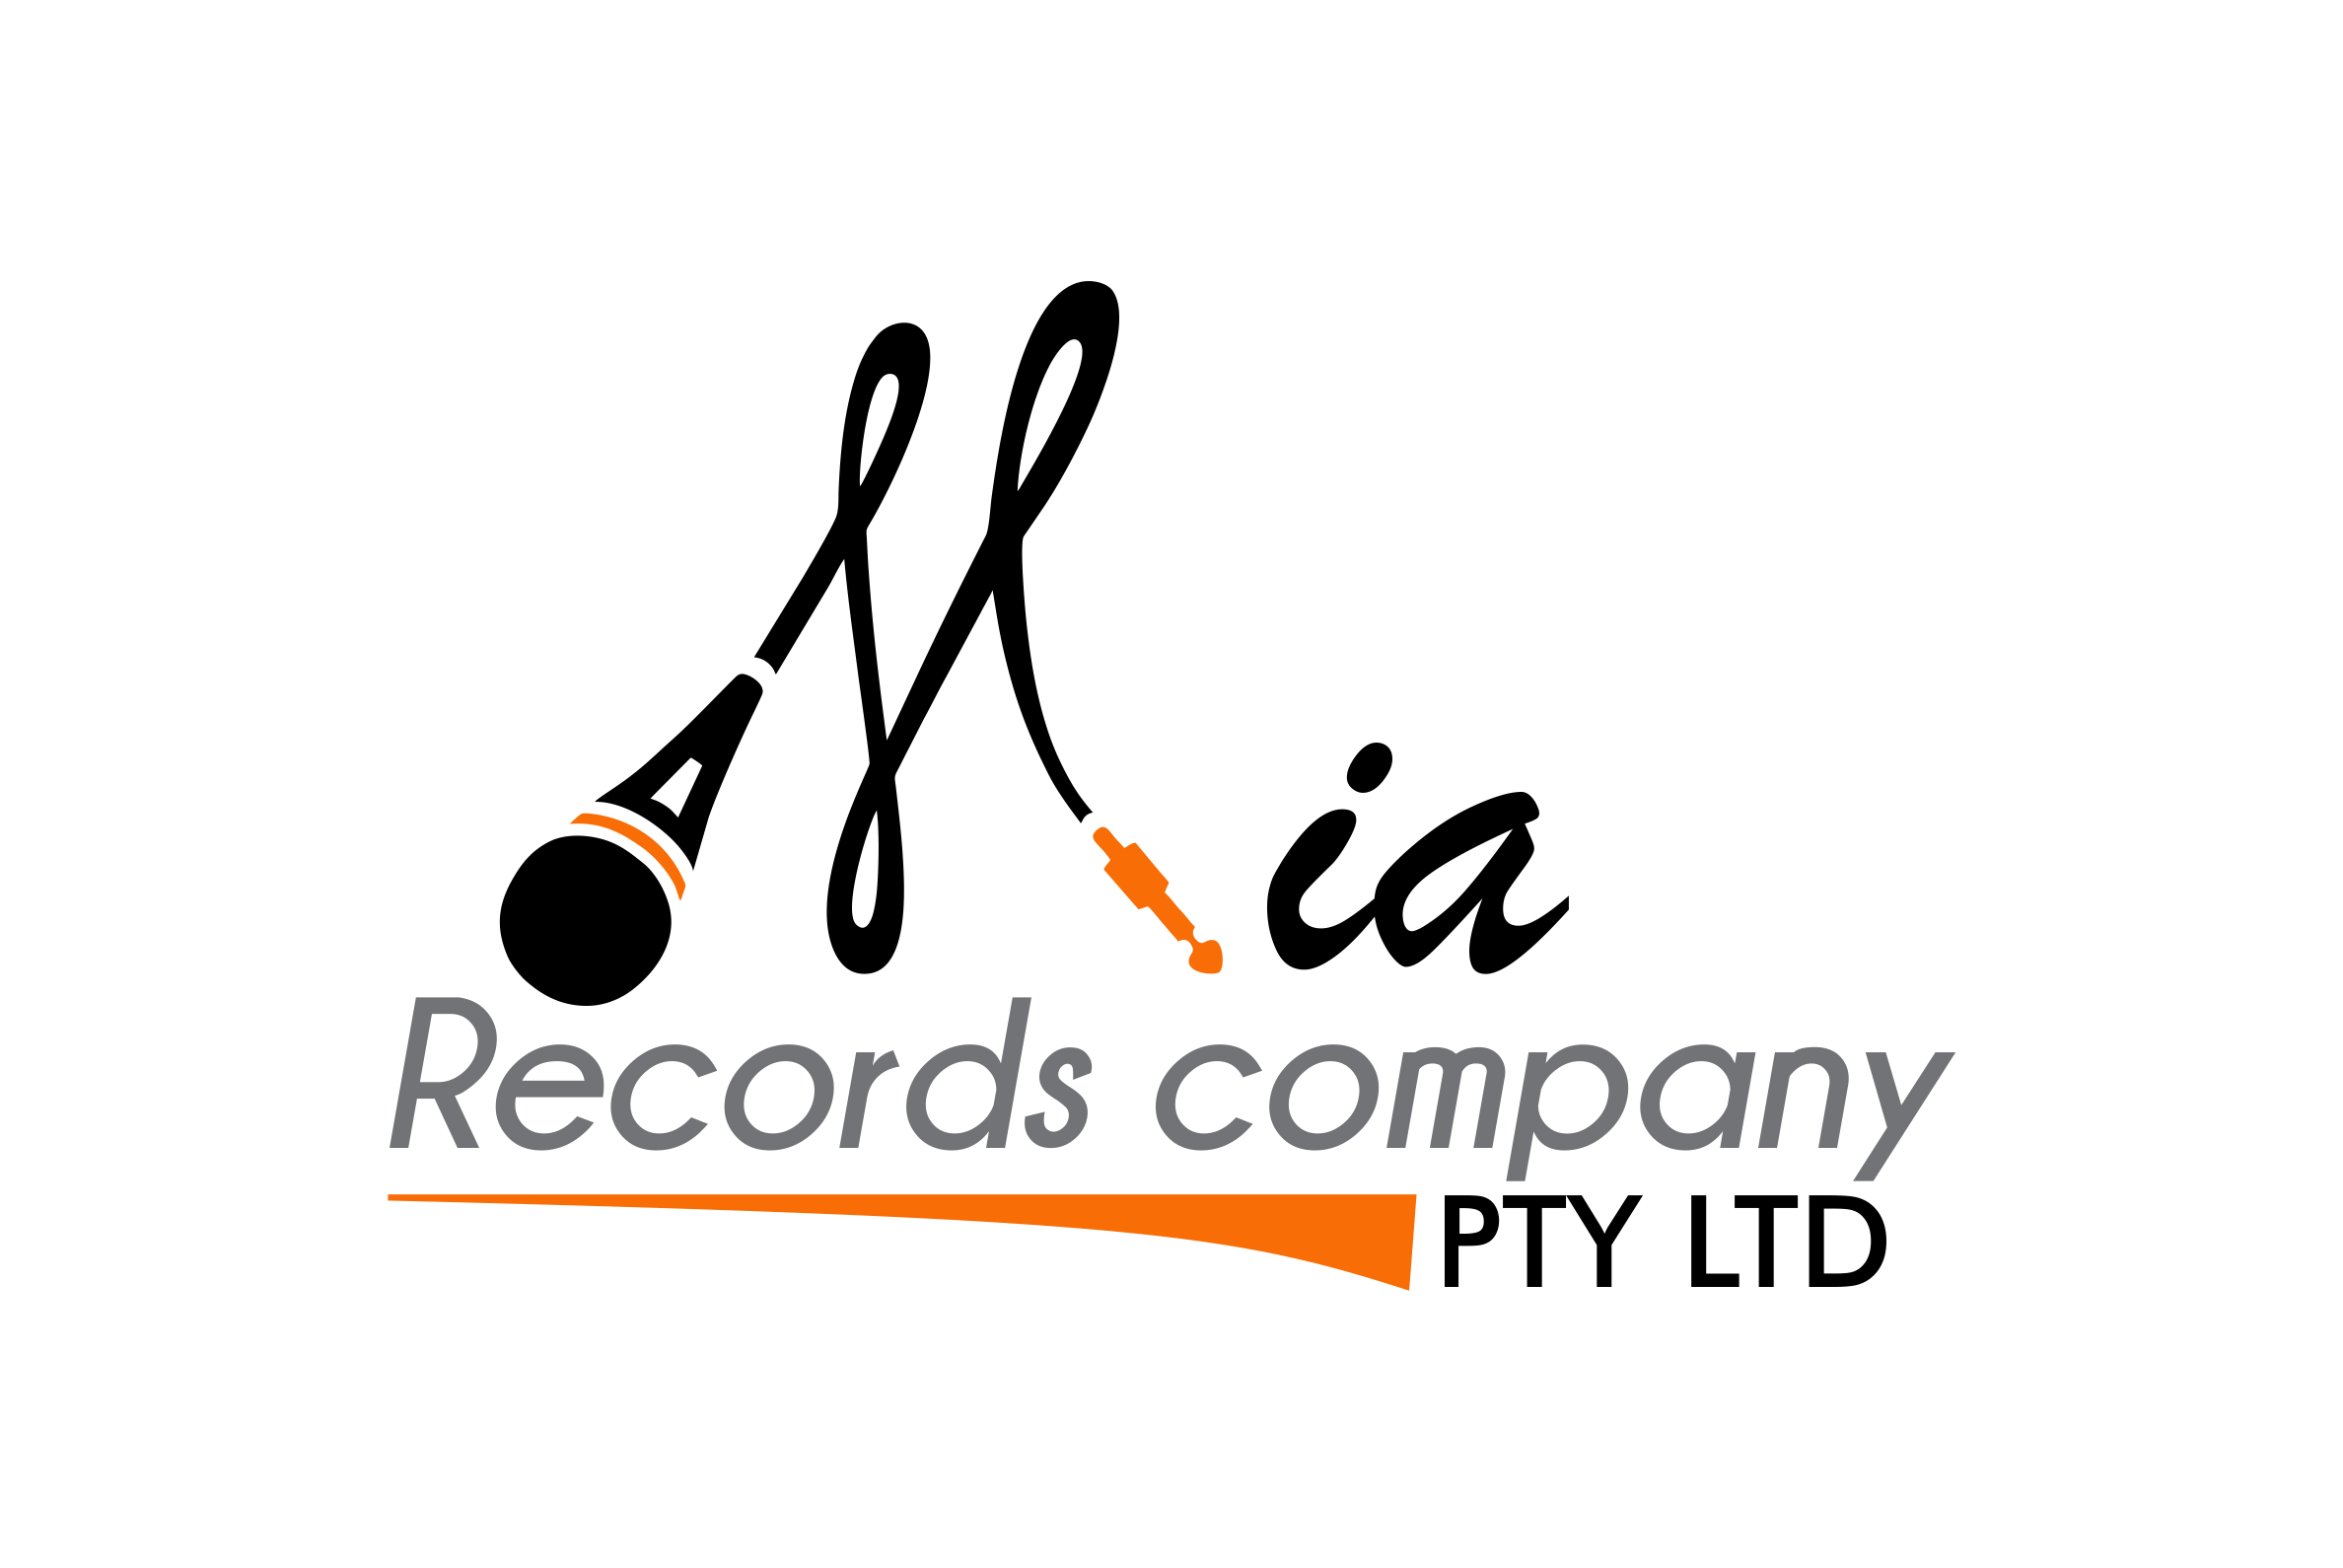 Mia Records Company (Pty,Ltd)